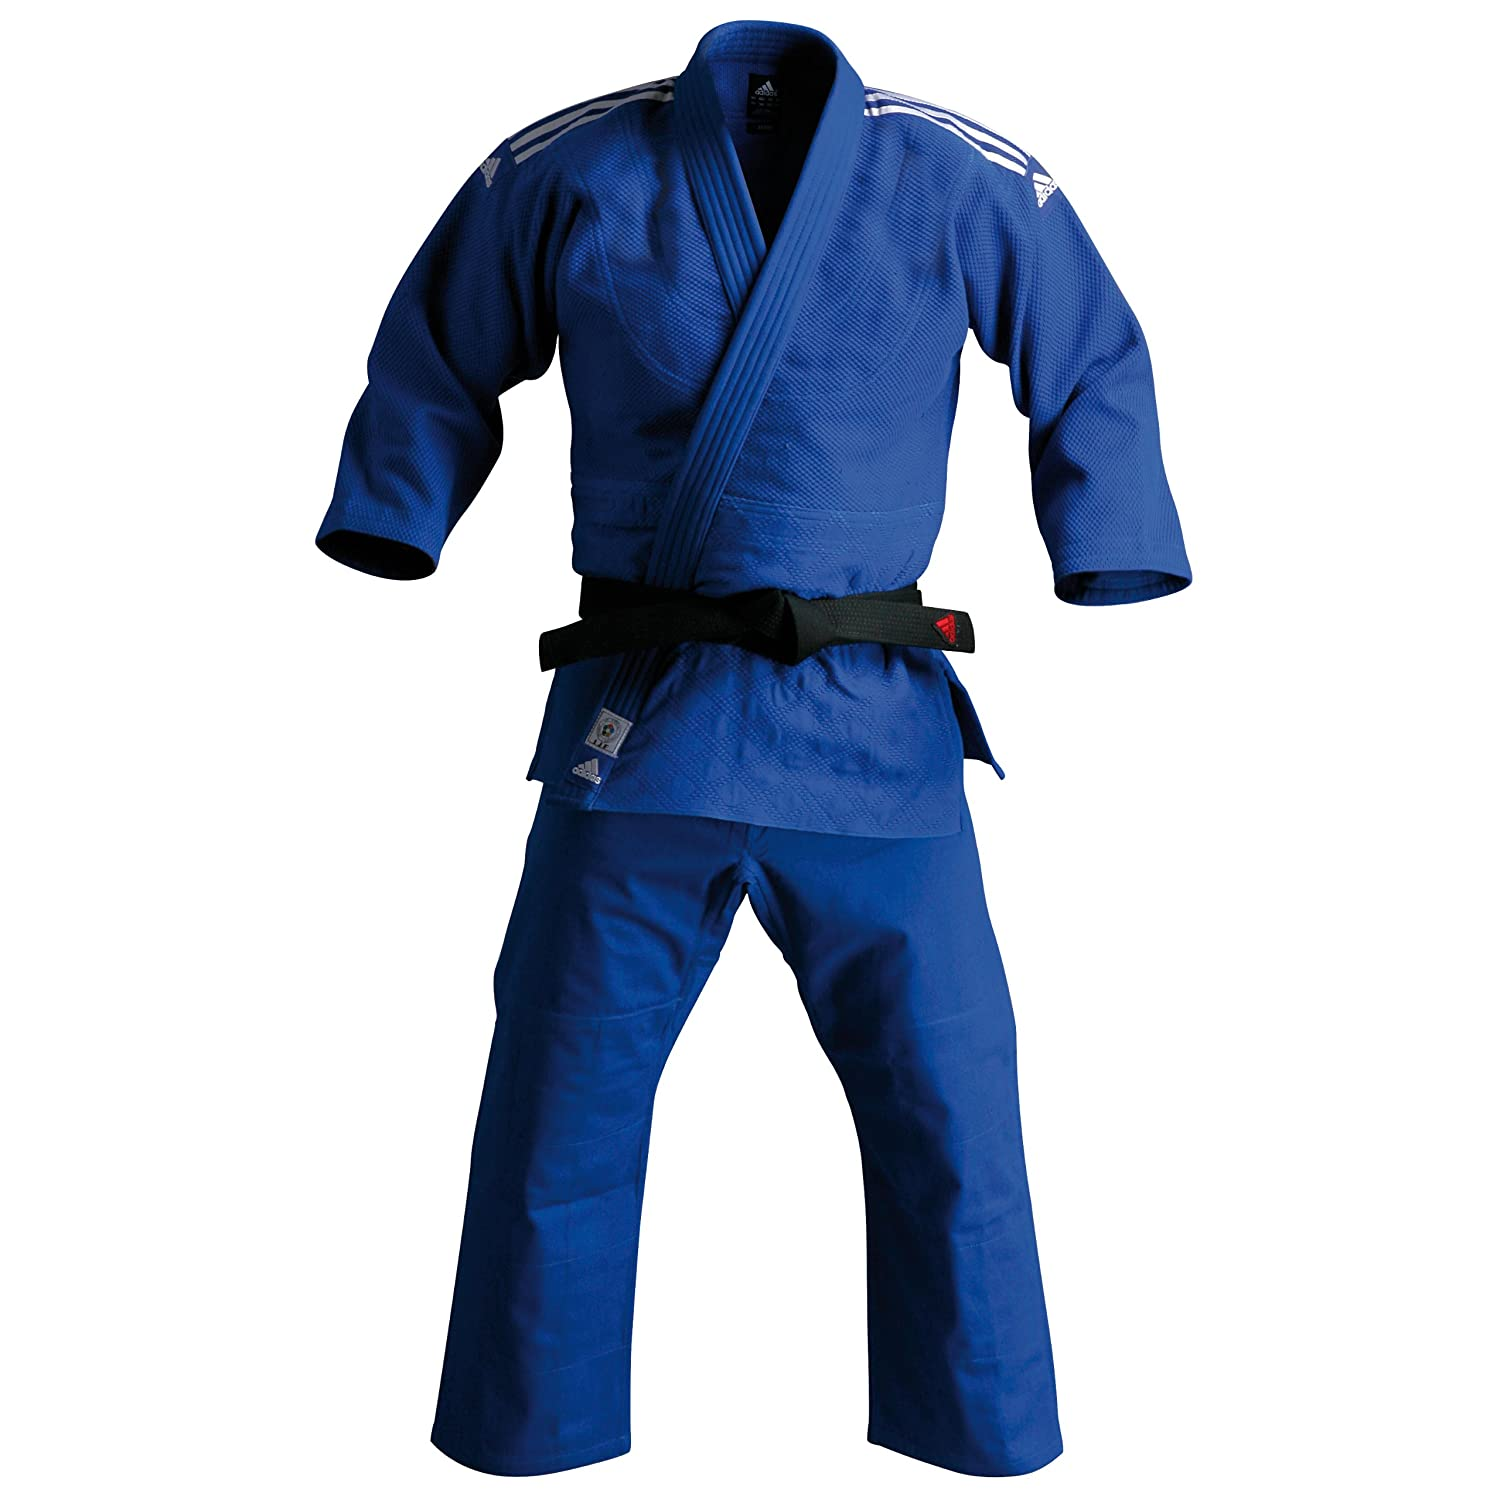 adidas Champion IJF - Traje de Judo, Color Azul: Amazon.es ...